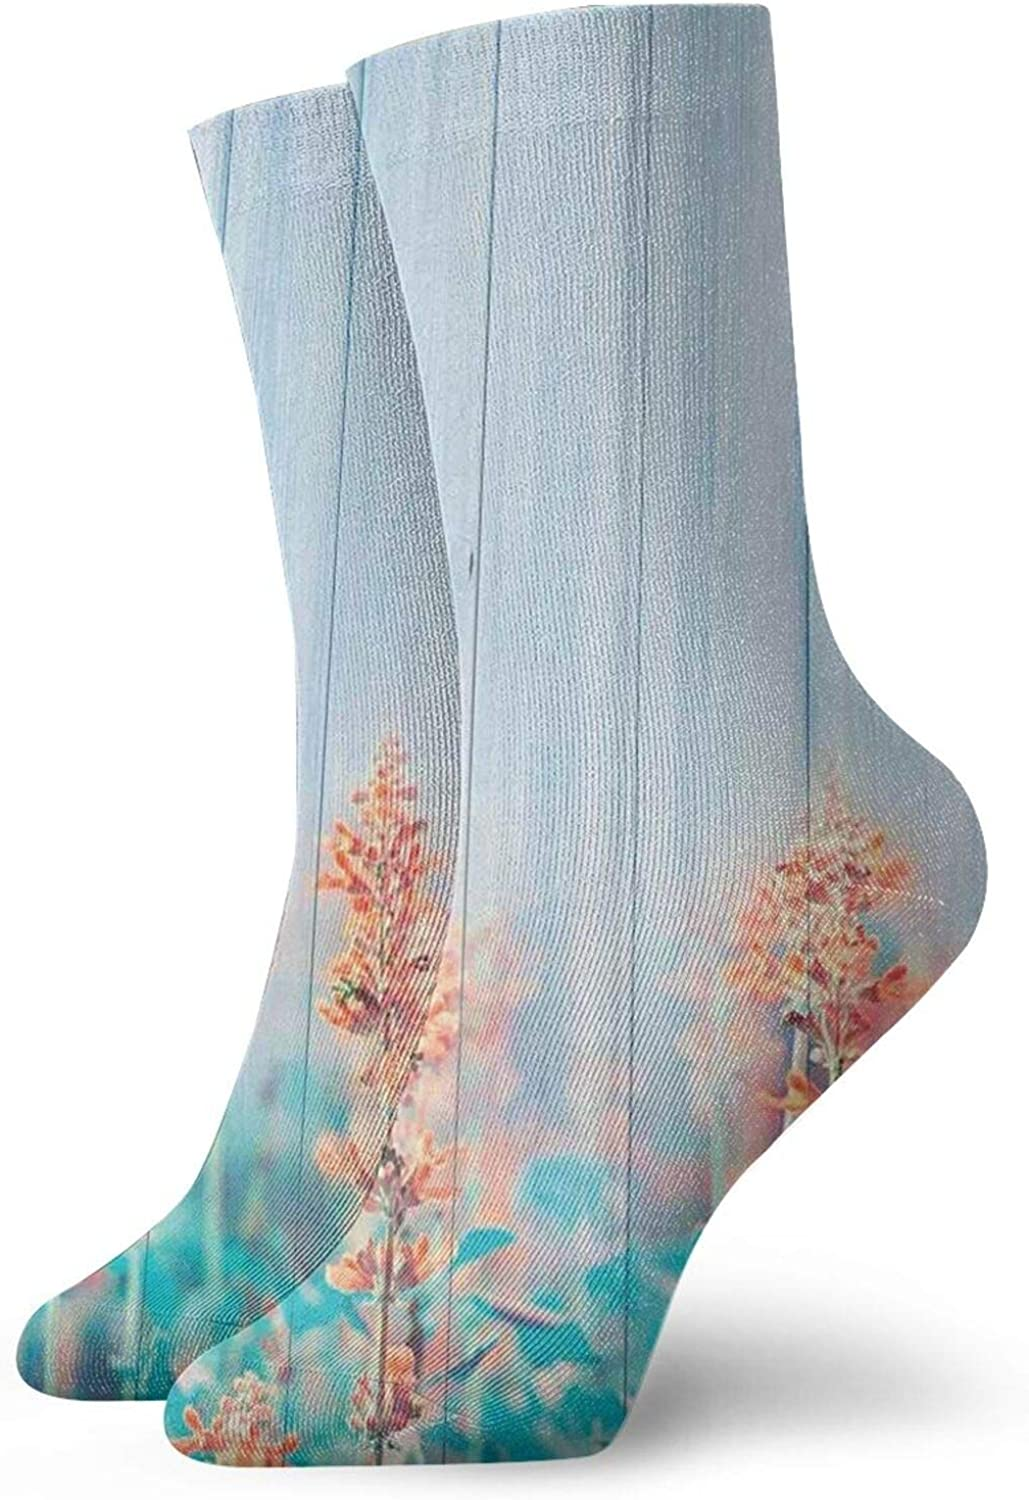 Compression High Socks-Flourishing Flowers Floral Blooms Garden Country House On Oak Plank Image Art Best for Running,Athletic,Hiking,Travel,Flight